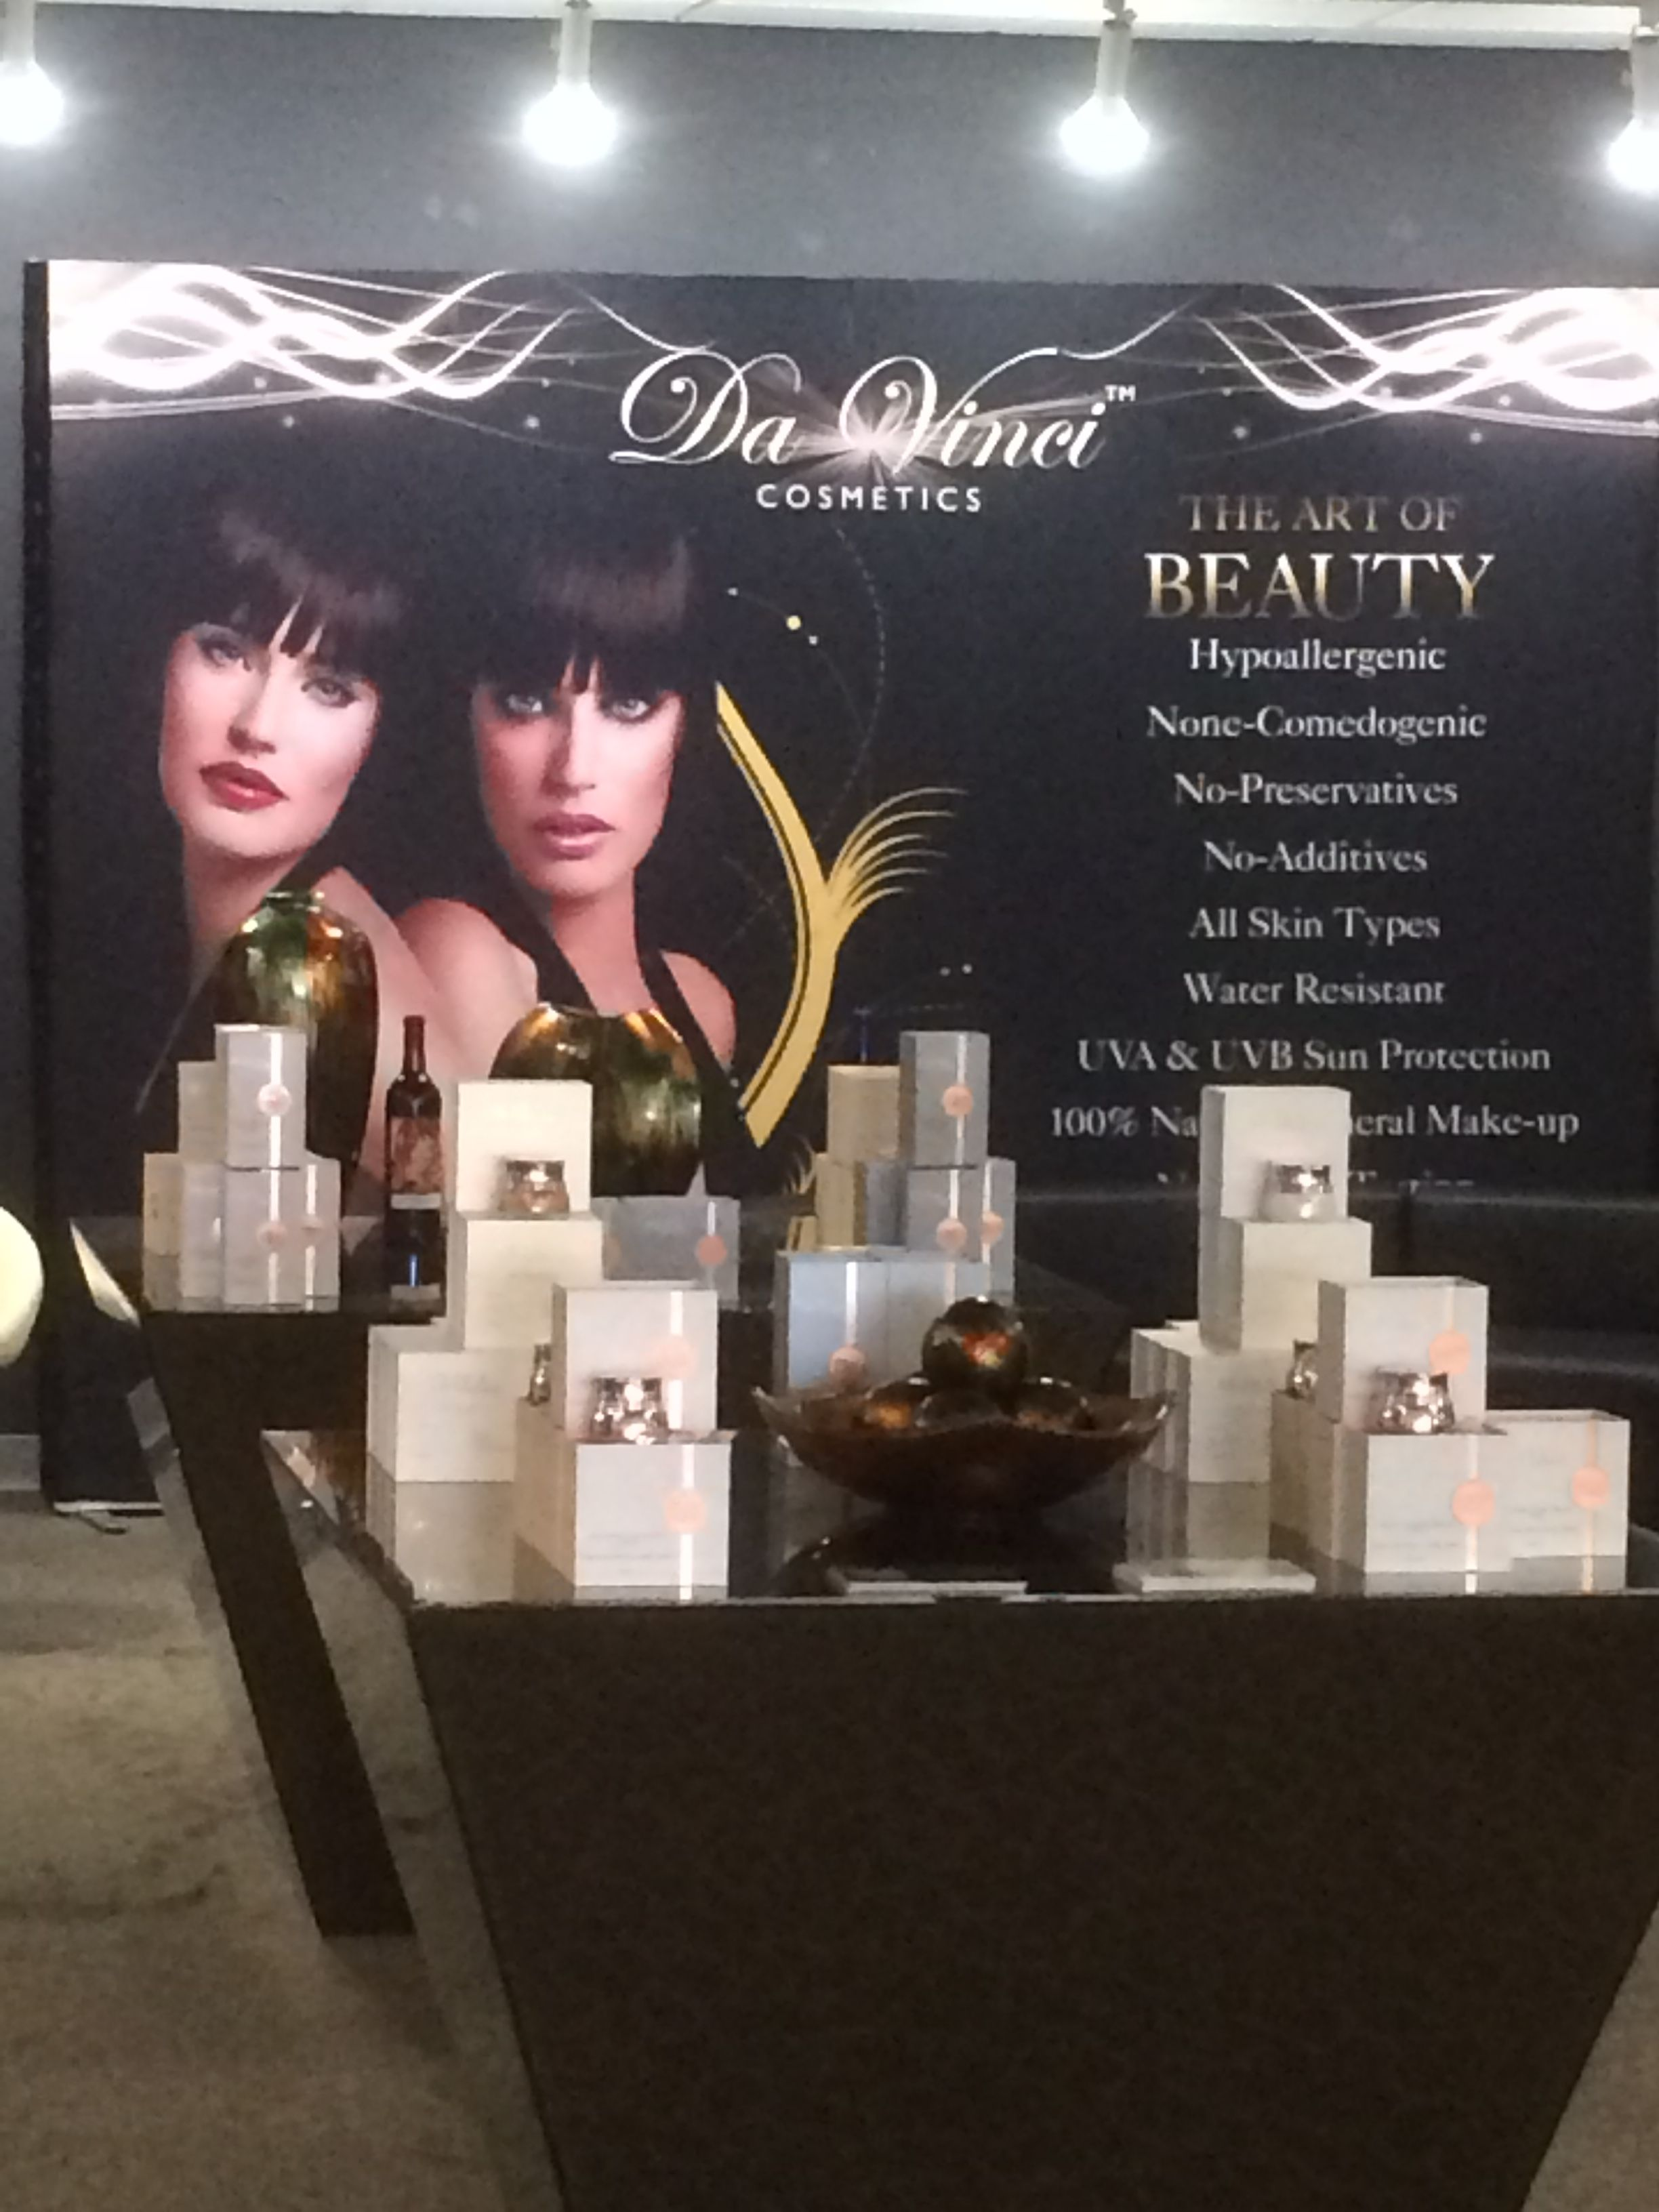 Da Vinci Cosmetics Store in Northridge Fashion Center, the